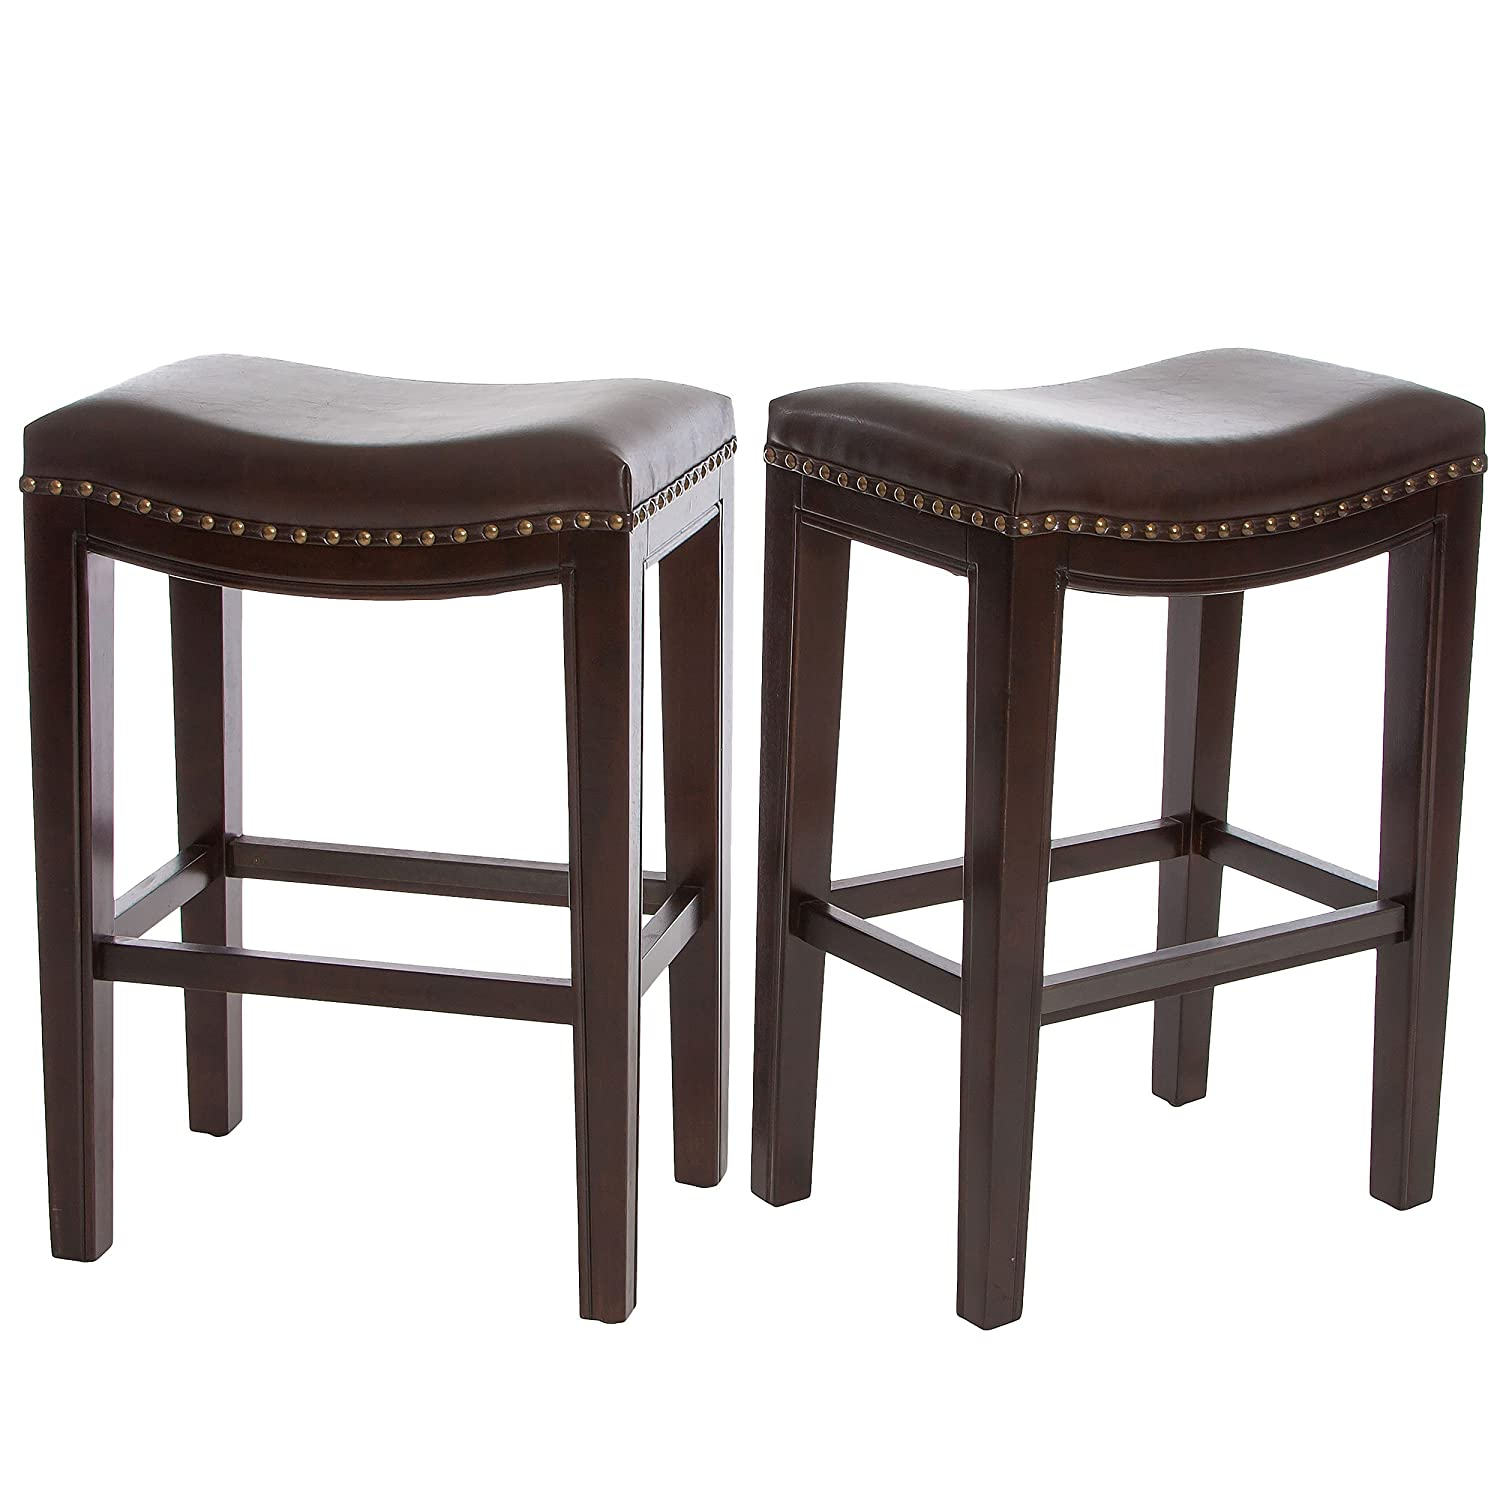 backless bar stools com furniture dining kitchen deal dp of stool great amazon set beige jaeden